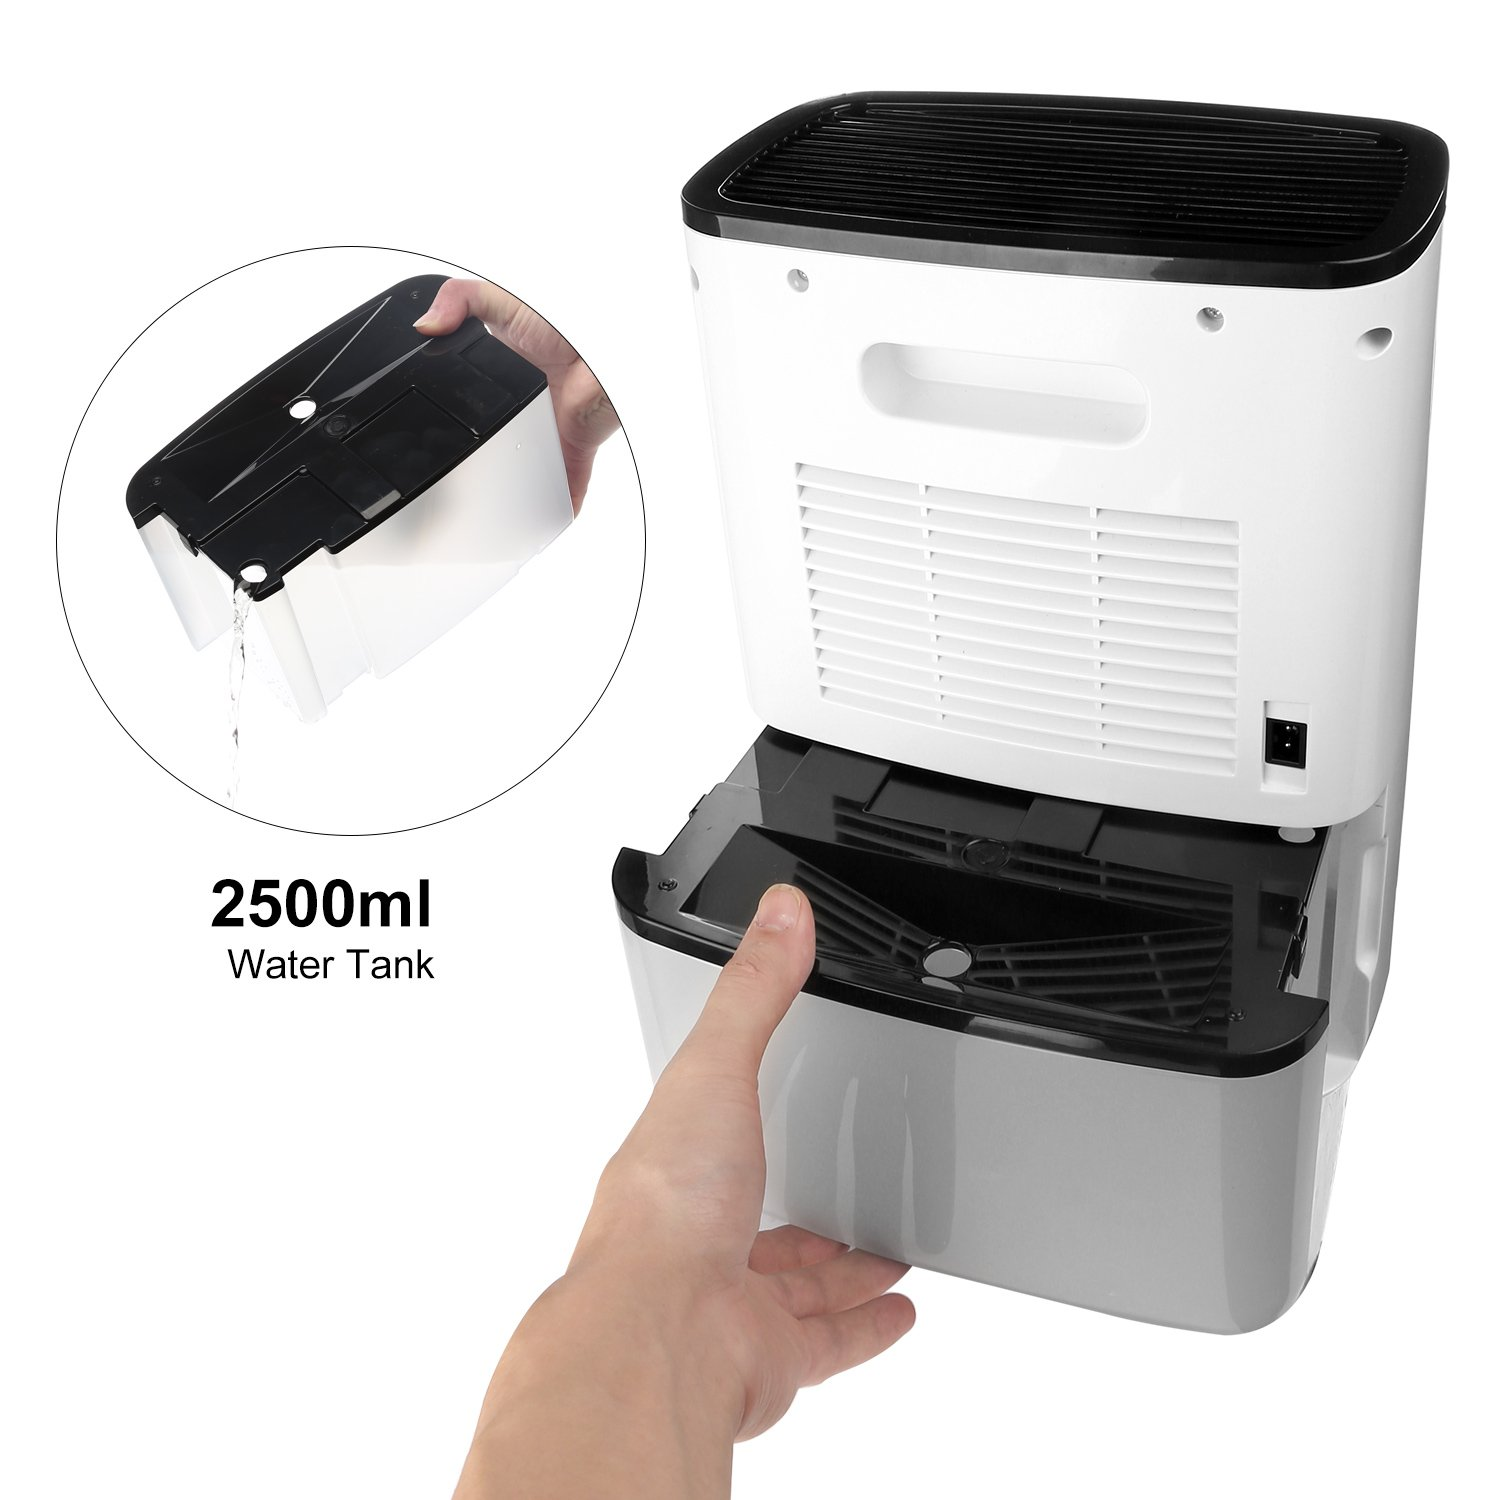 LUOYIMAN Dehumidifier Electric Home Dehumidifier Quiet Operation with UV Sterilization (2.5 Liter) by LUOYIMAN (Image #3)